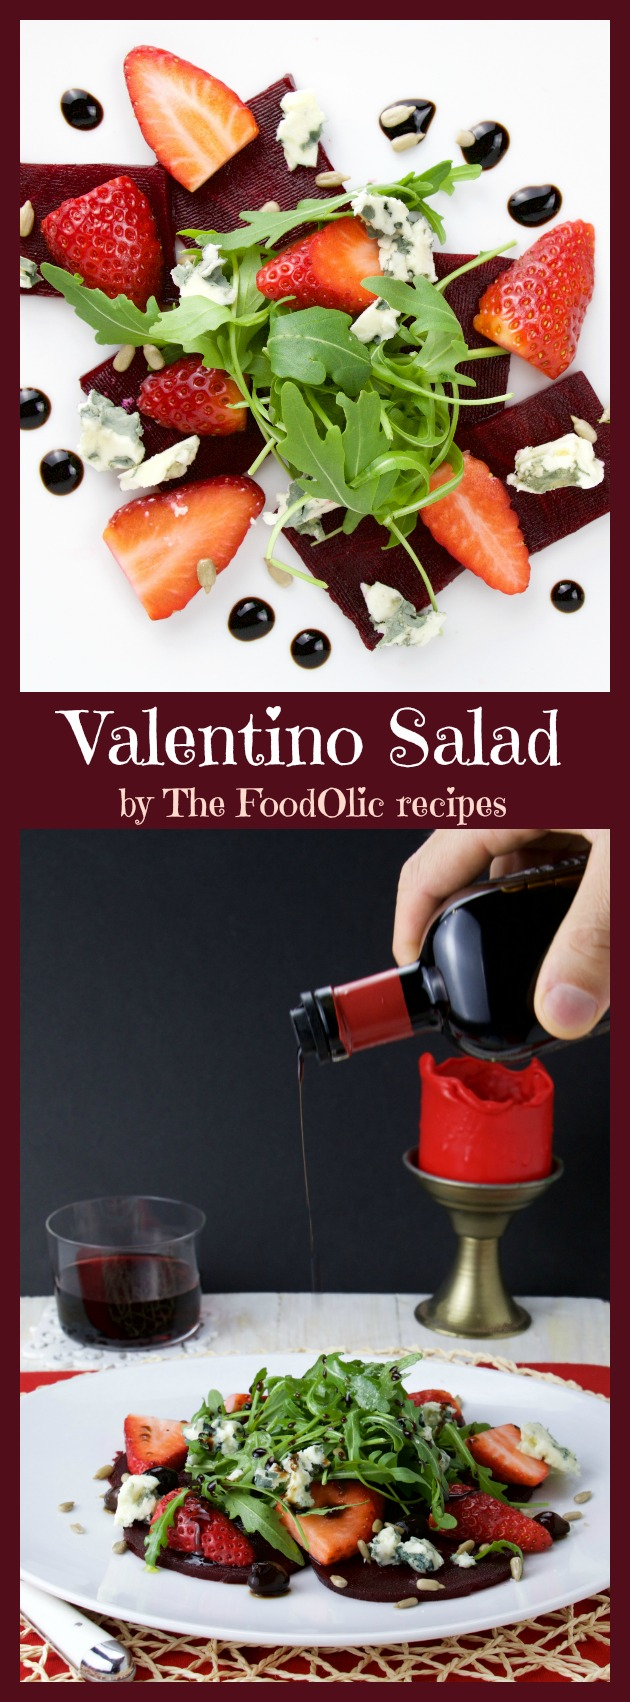 Valentino Salad is a perfect starter for a romantic dinner, it's a light earthy salad with roasted beets, strawberries, roquefort, sunflower seeds and arugula topped with an aged balsamic vinegar.